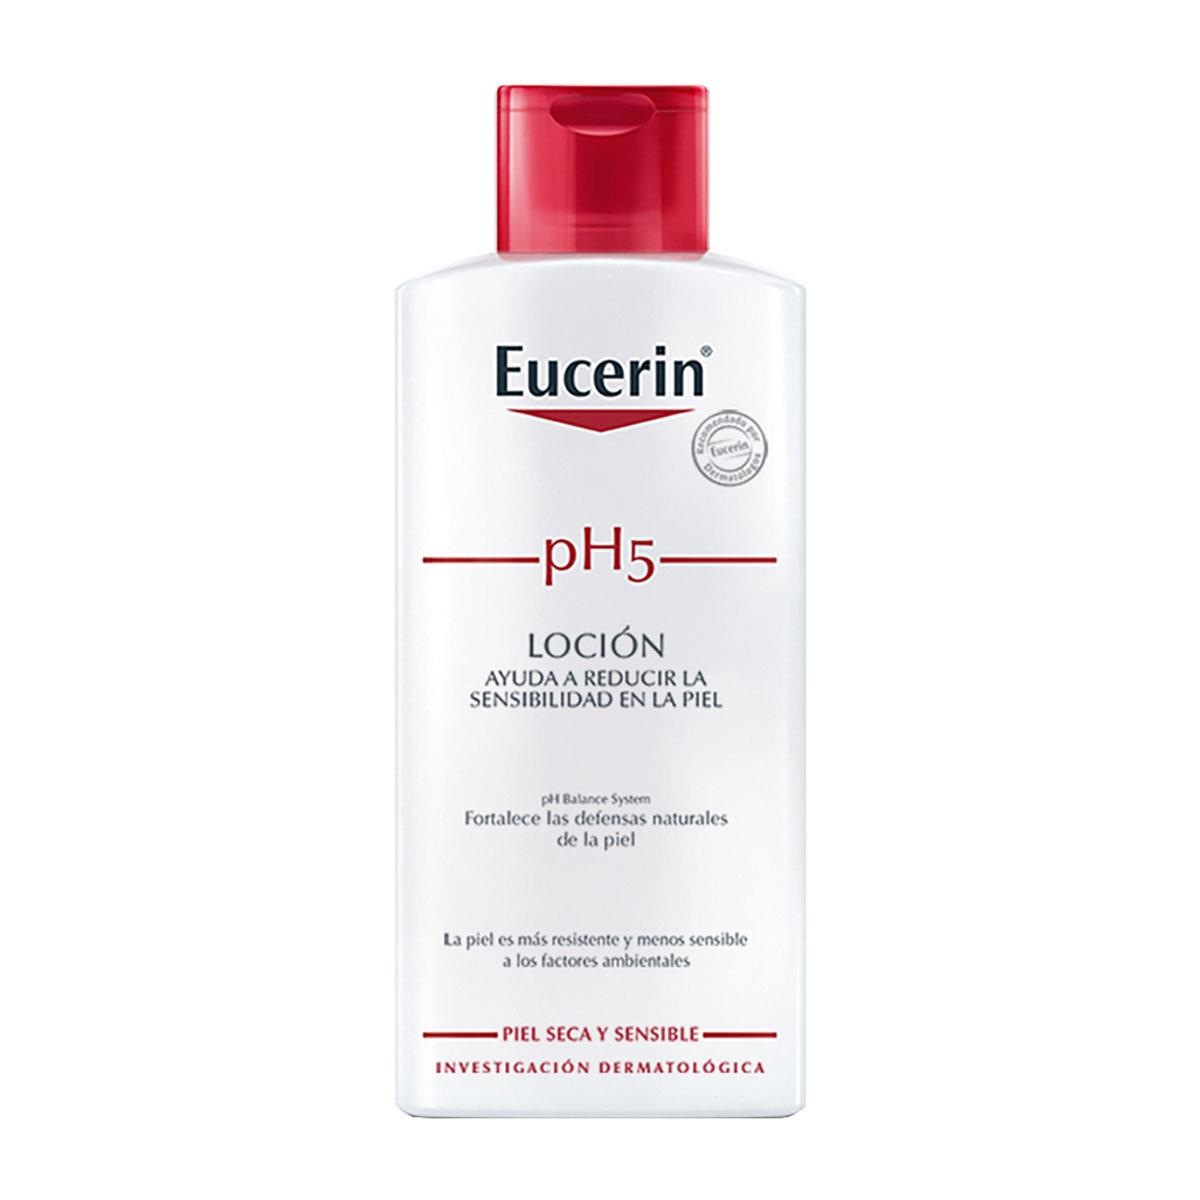 Eucerin Ph5 Crema 1 Botella Liquido 250 Ml